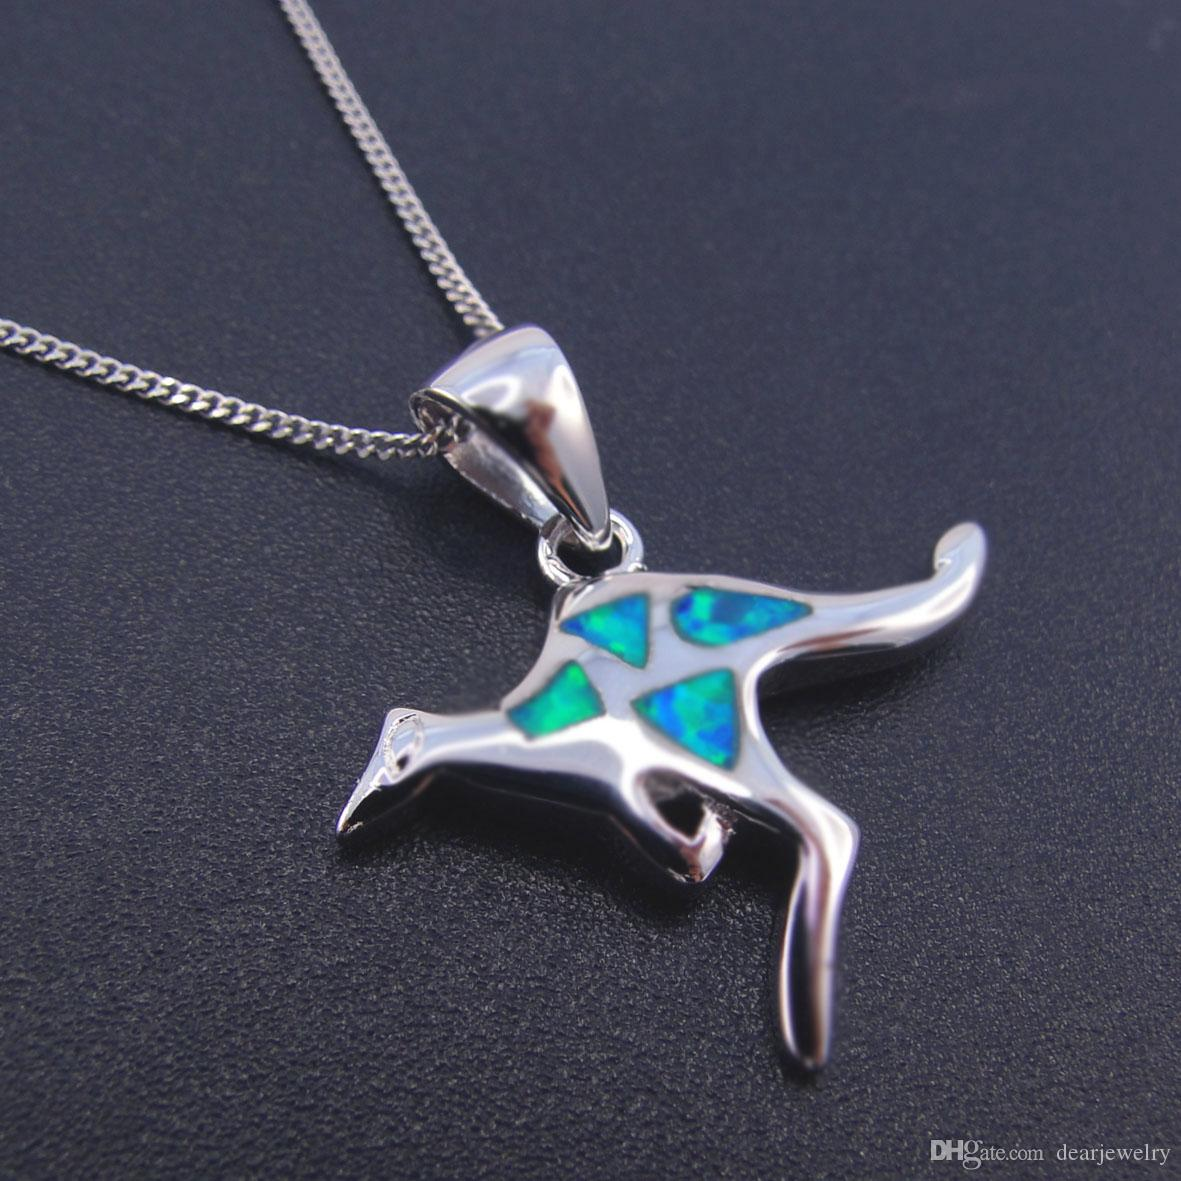 necklace created pendant zoom en lab mv zm kay kaystore blue hover silver sterling opal to